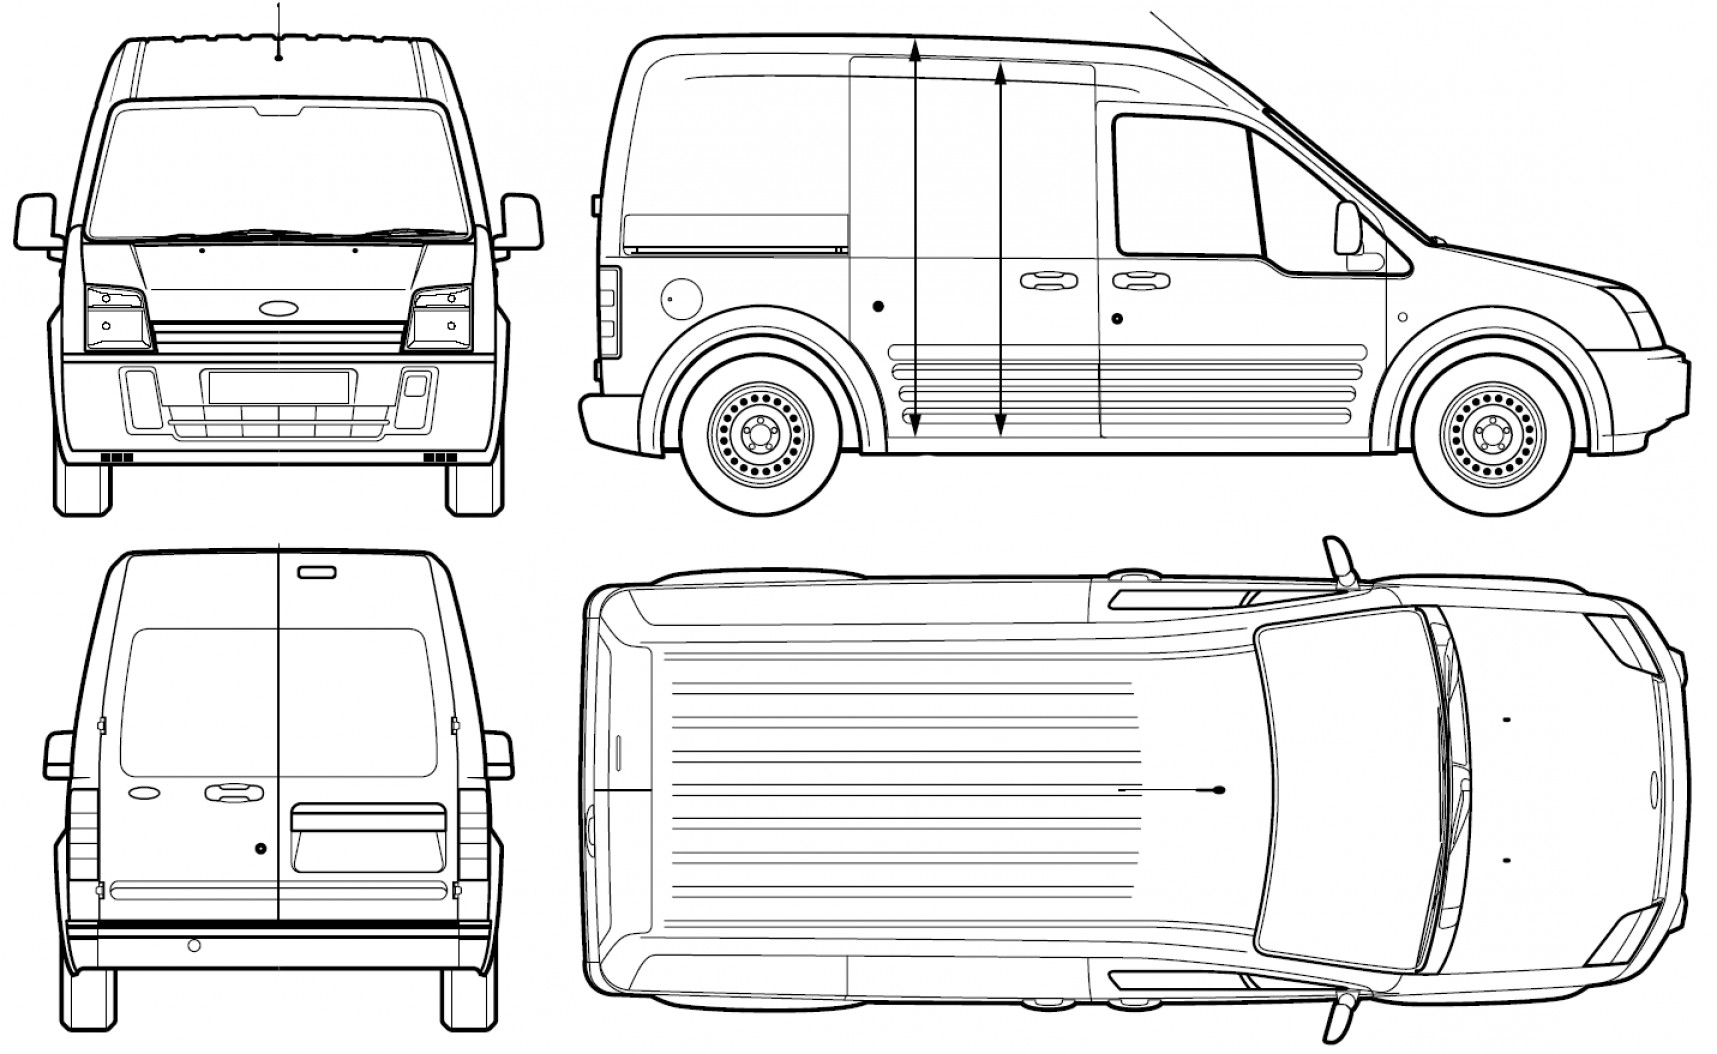 Ford Vector Art: Ford Transit Connect Van Blueprints